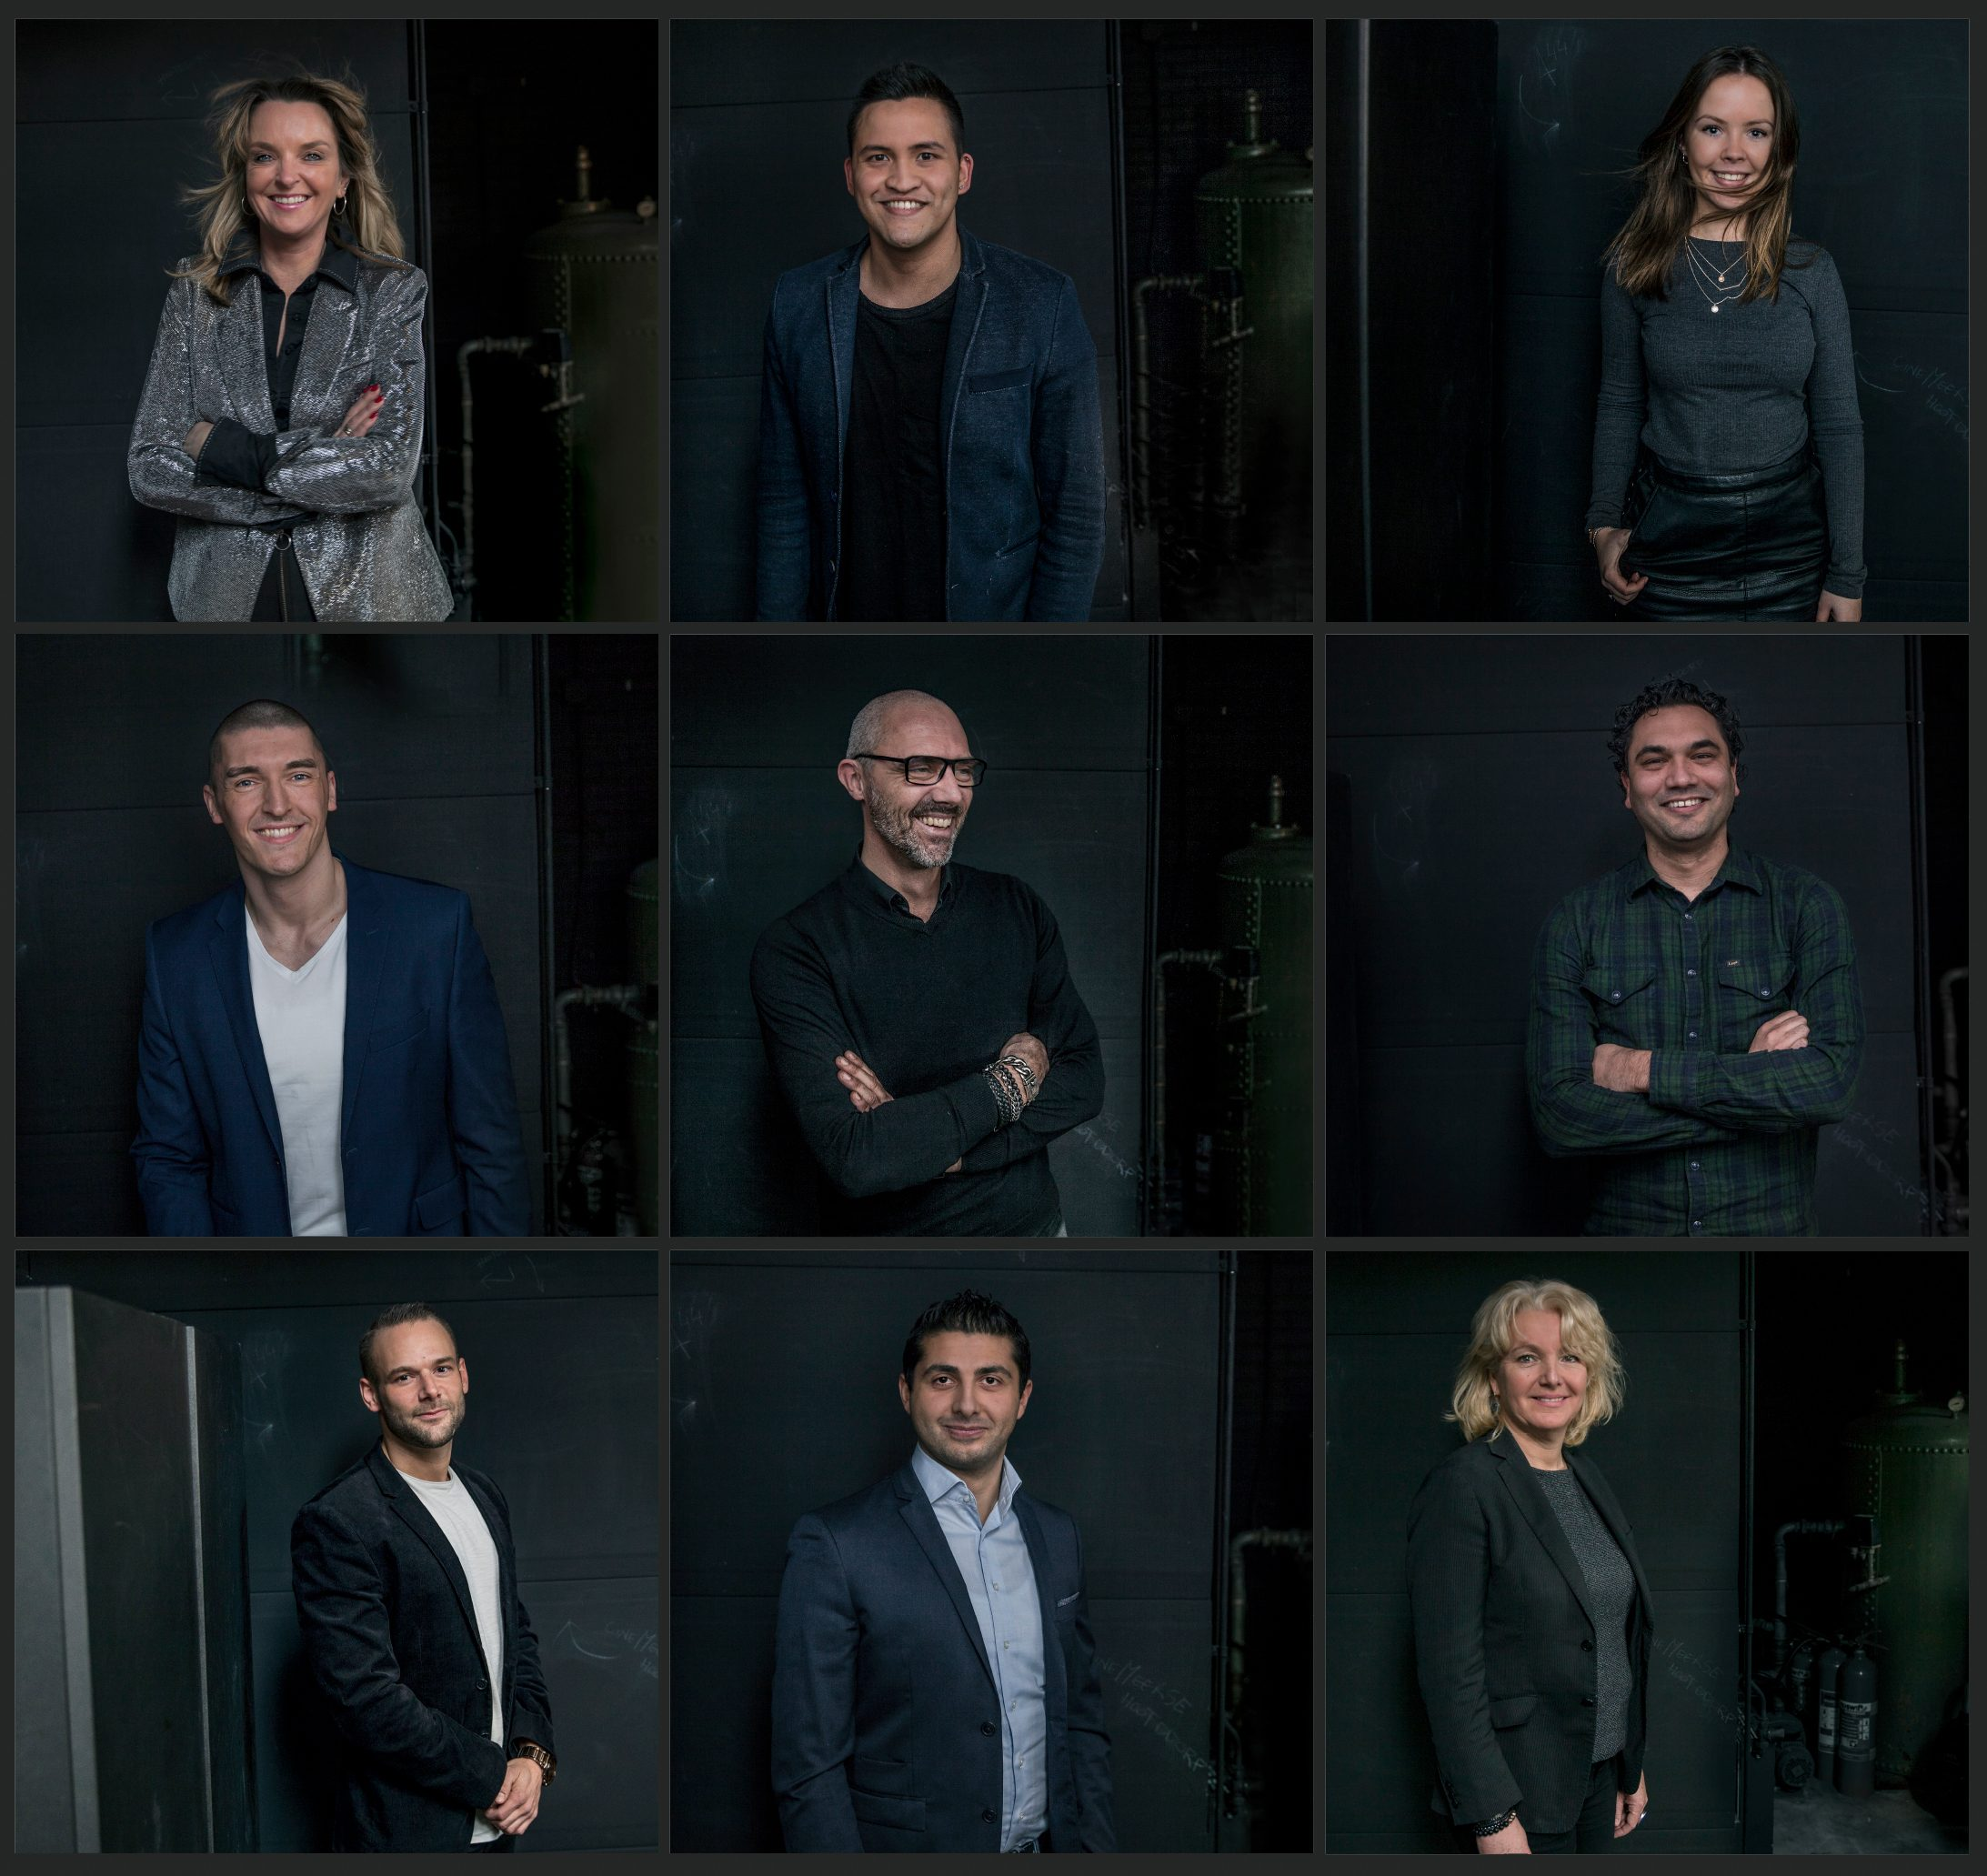 Team KP-Architecten